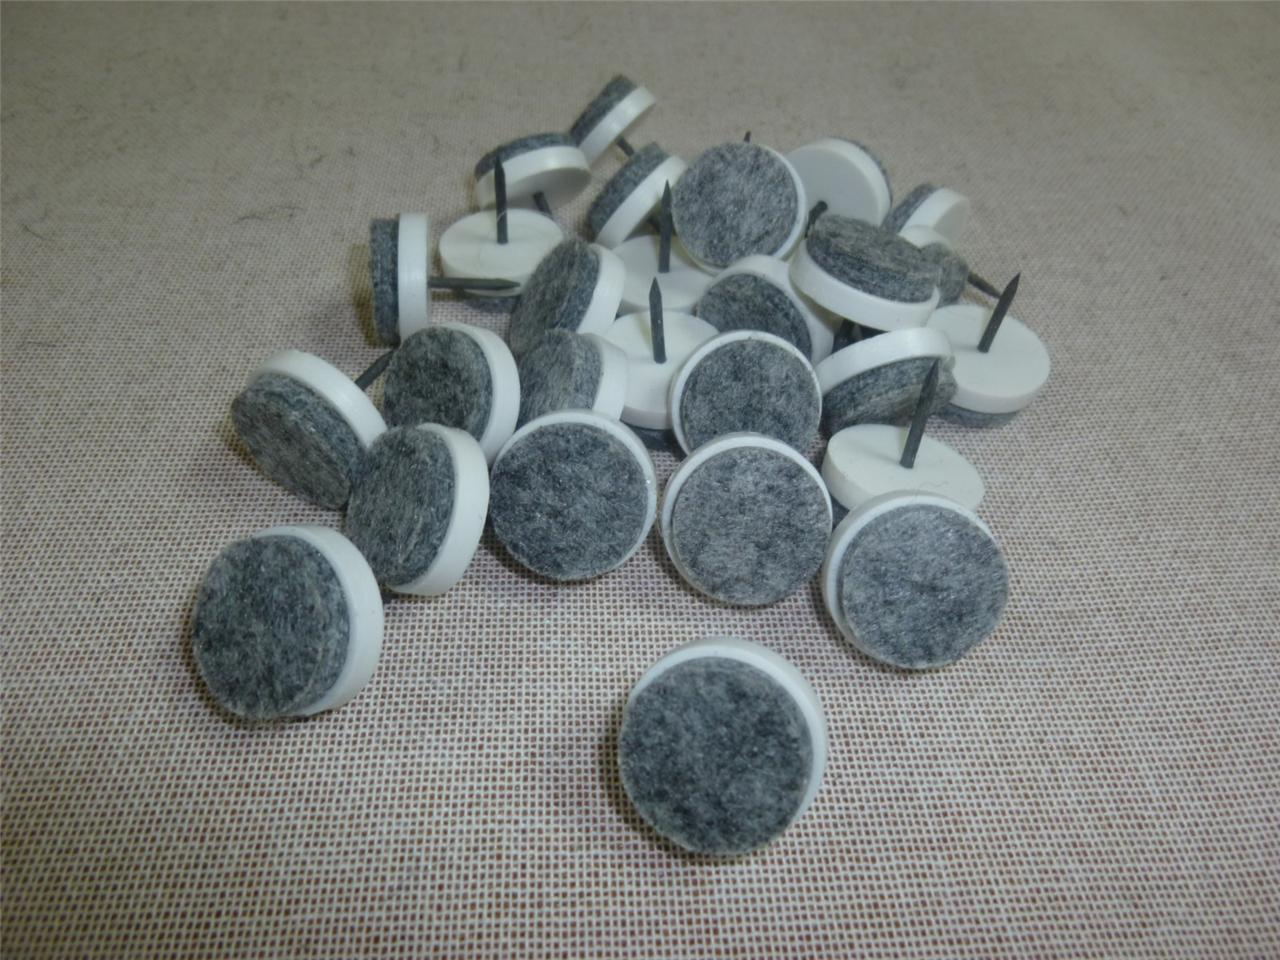 100 25 Chairs Felt Cushioned Nail On Protective Glides Furniture Legs Feet